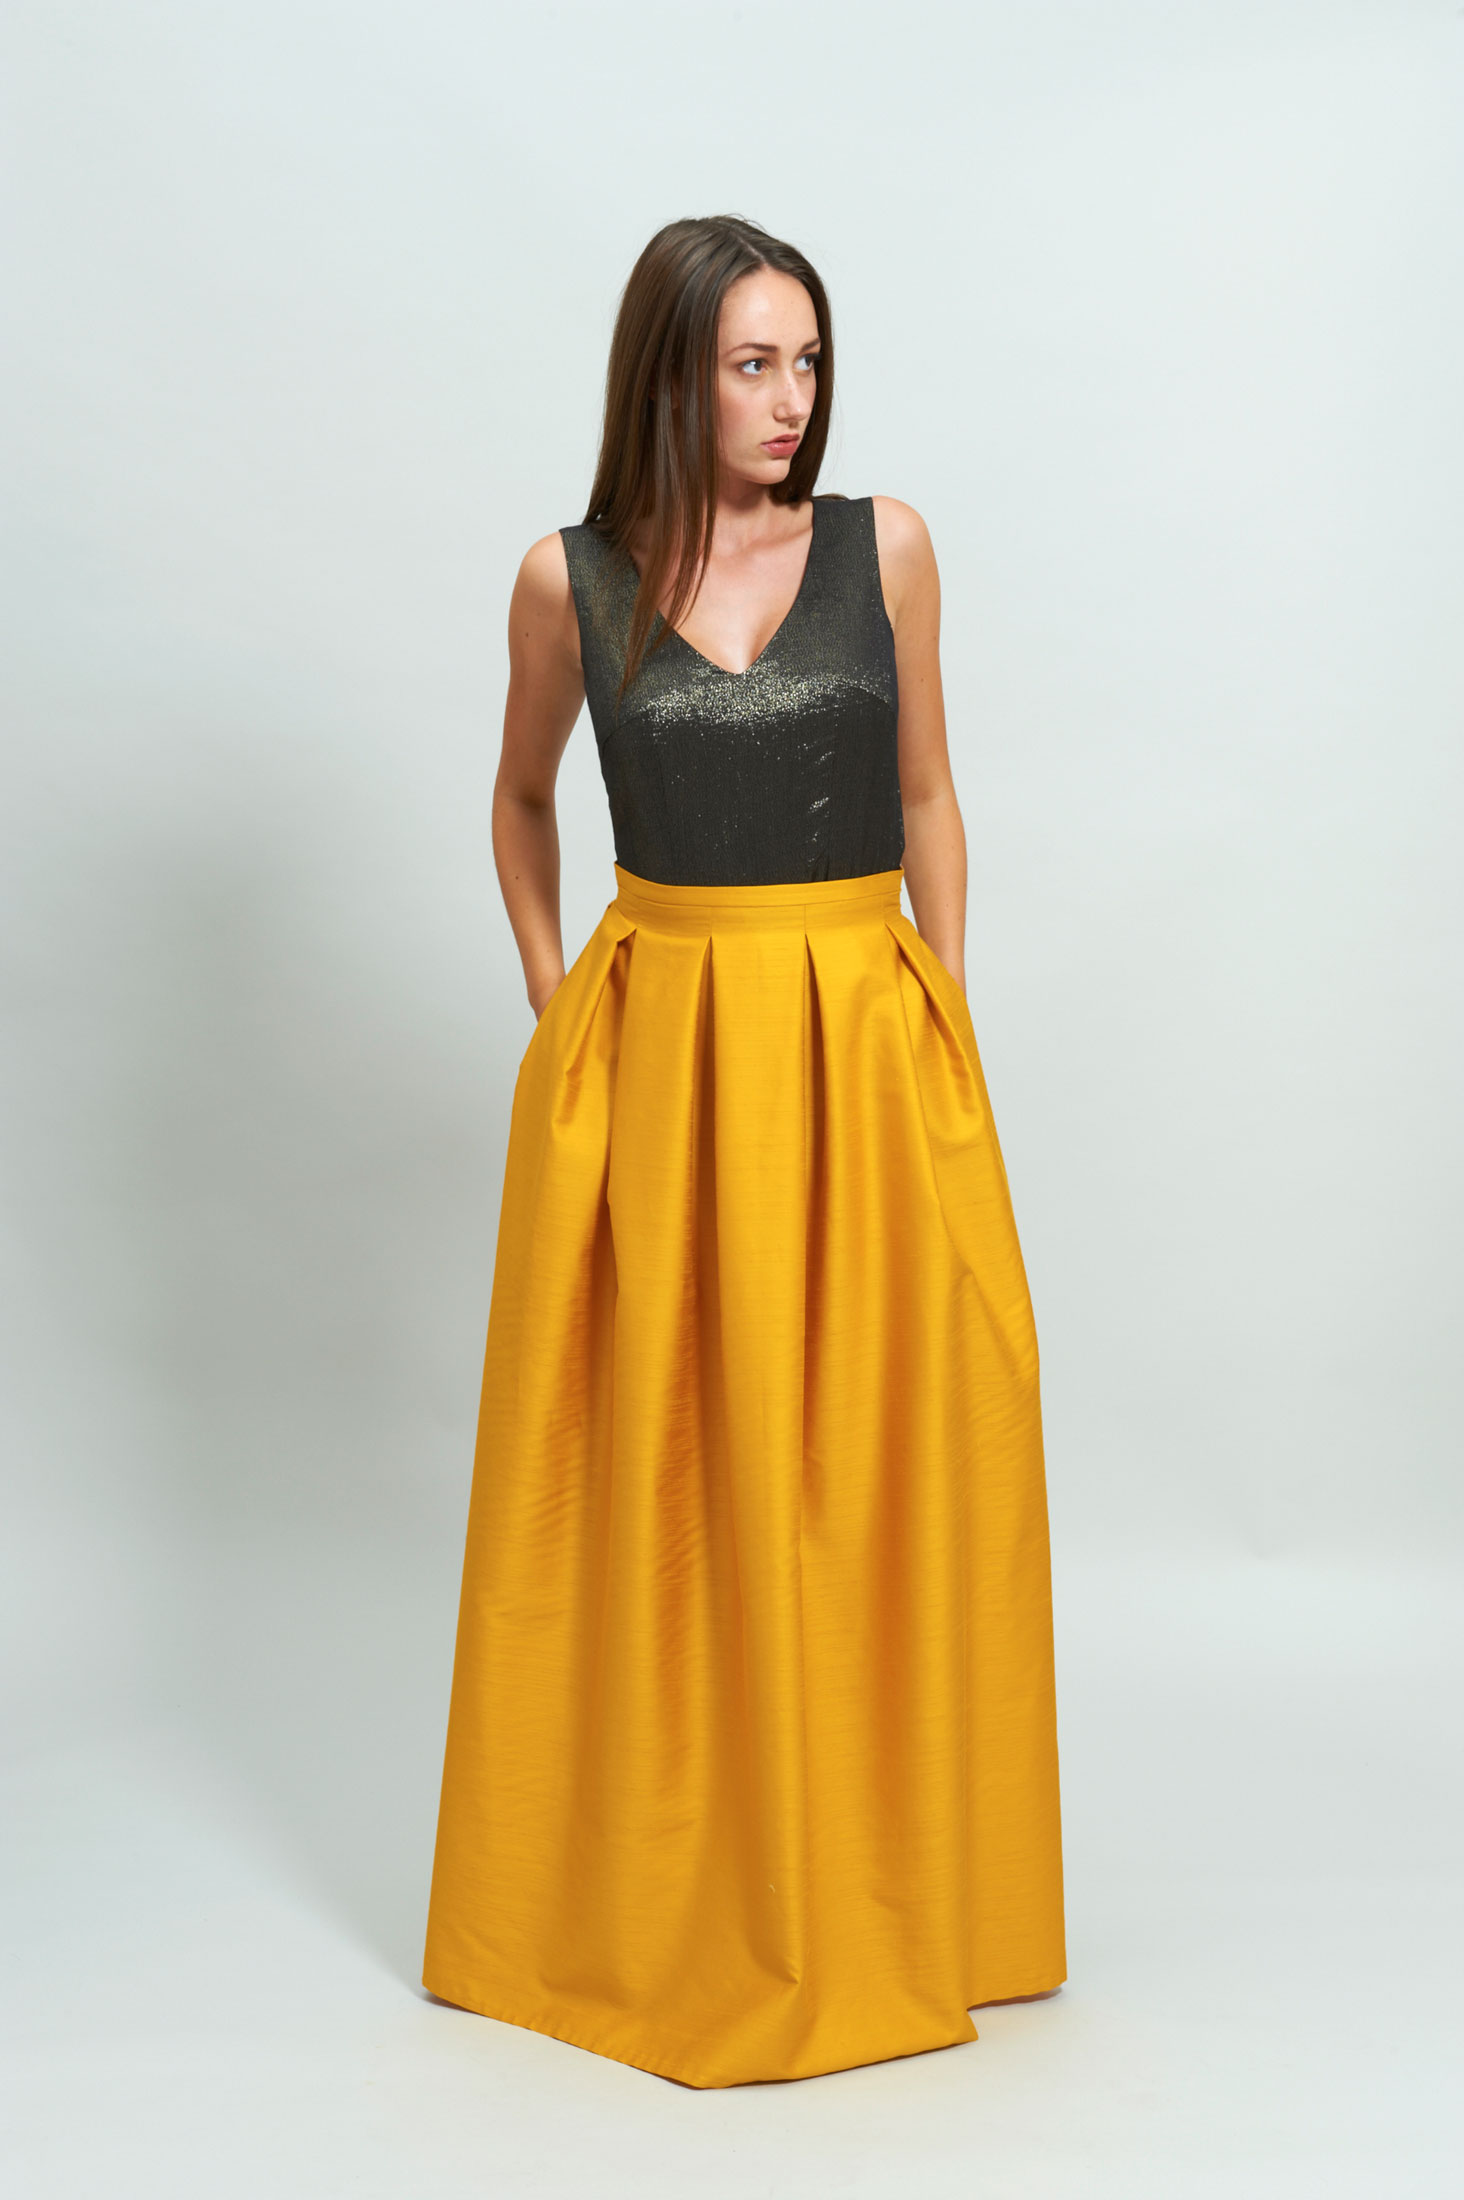 LOOK C.5 Silk Plisse Maxi Skirt LOOK C.5.1 Gold Crop Top Atelier Zürich Made in Switzerland